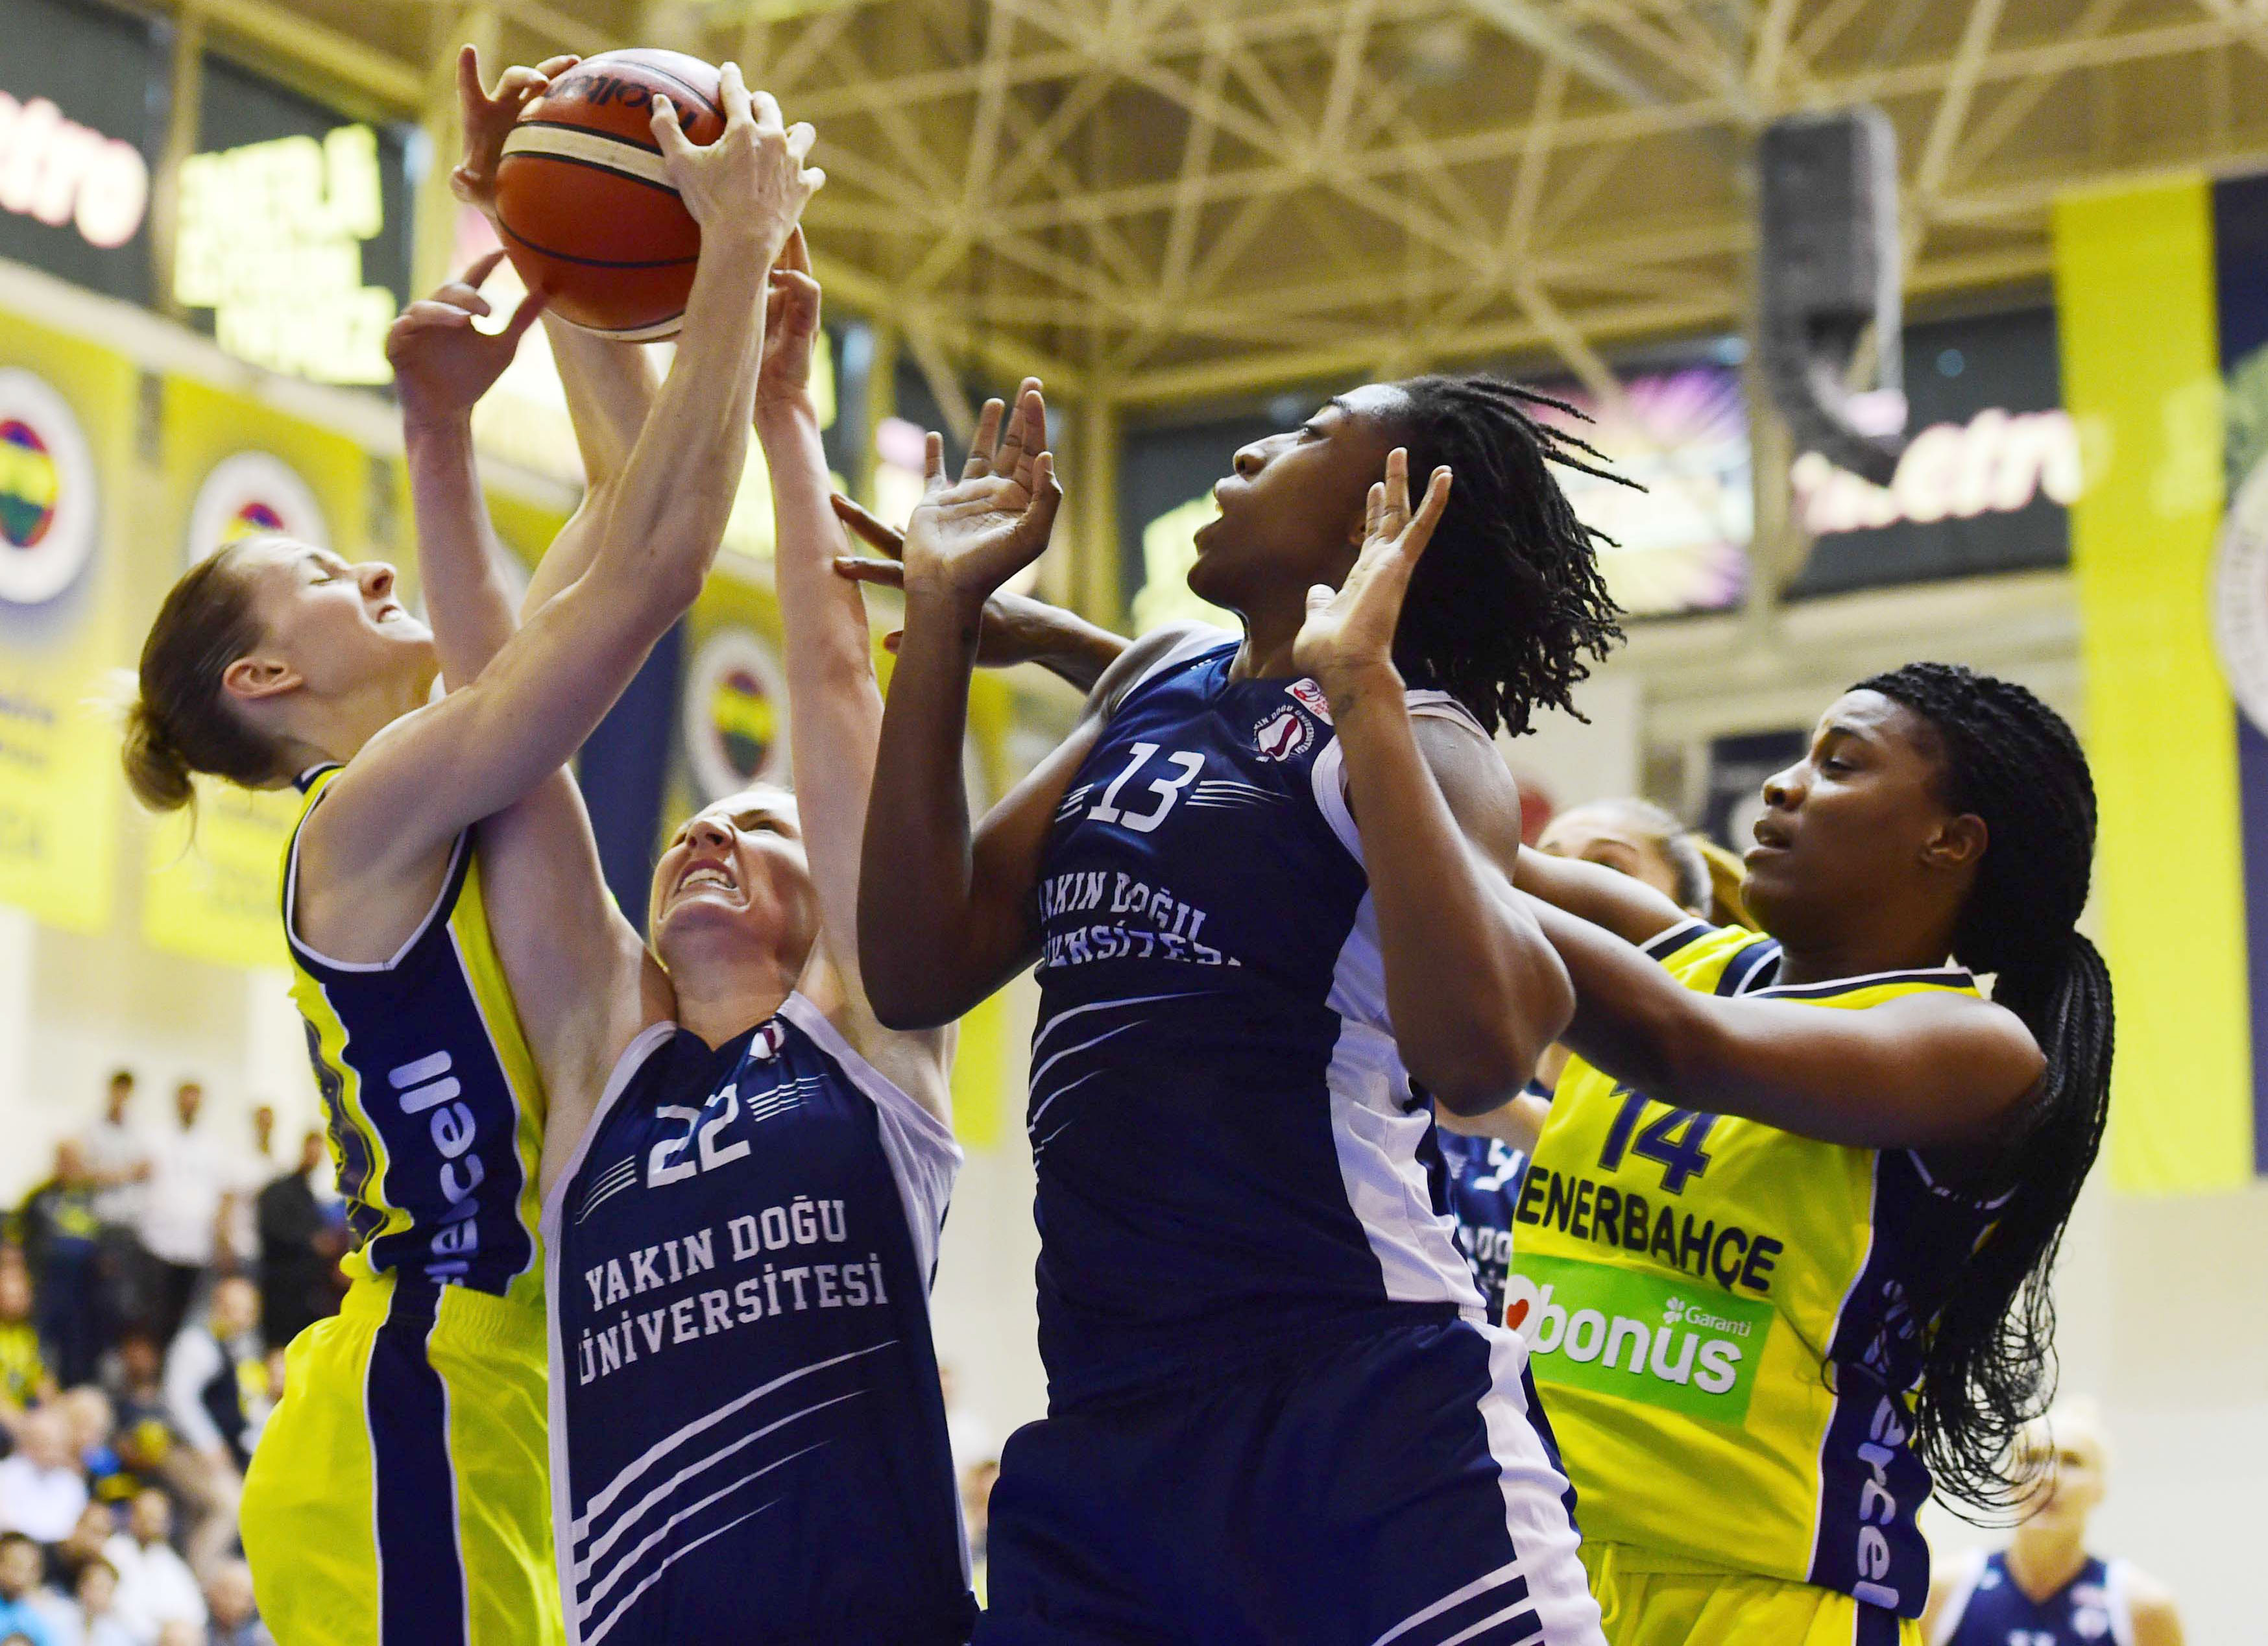 Basketball Final Excitement Continues … Fenerbahçe – Near East University